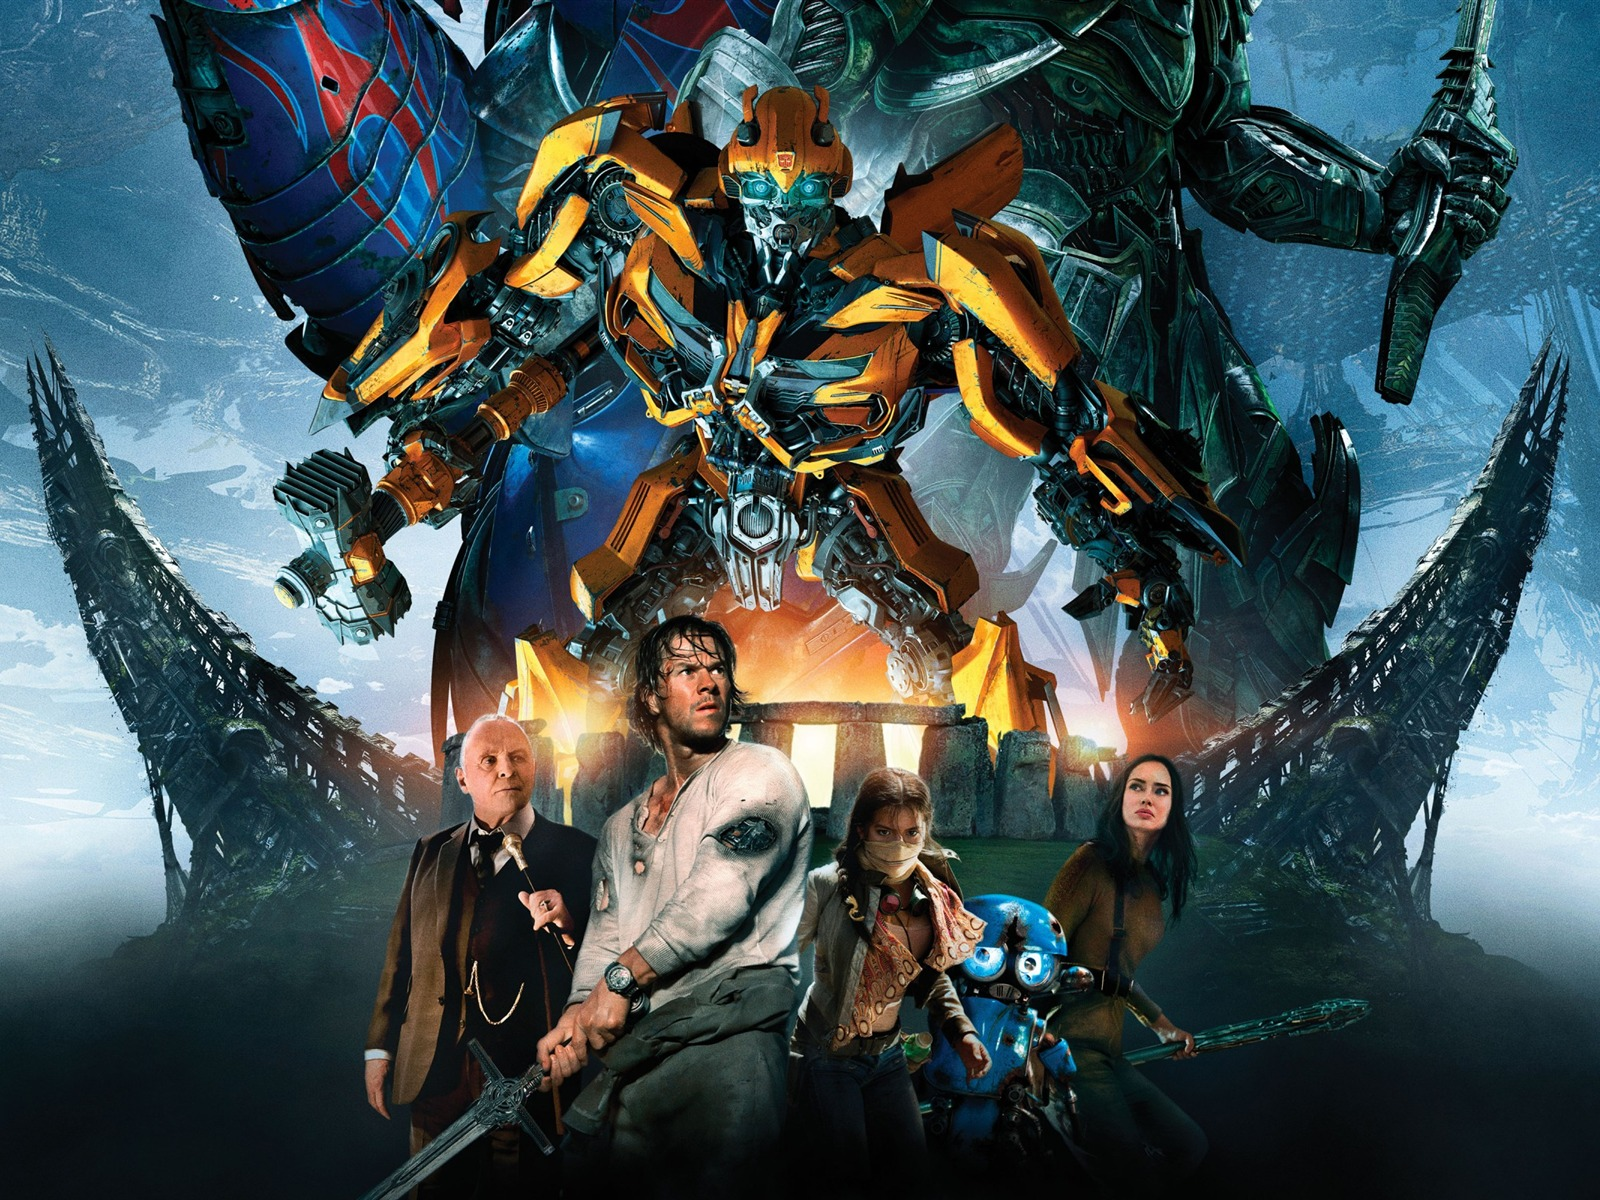 Bumblebee Transformers The Last Knight-2017 Movie HD Wallpapers - 1600x1200 wallpaper download